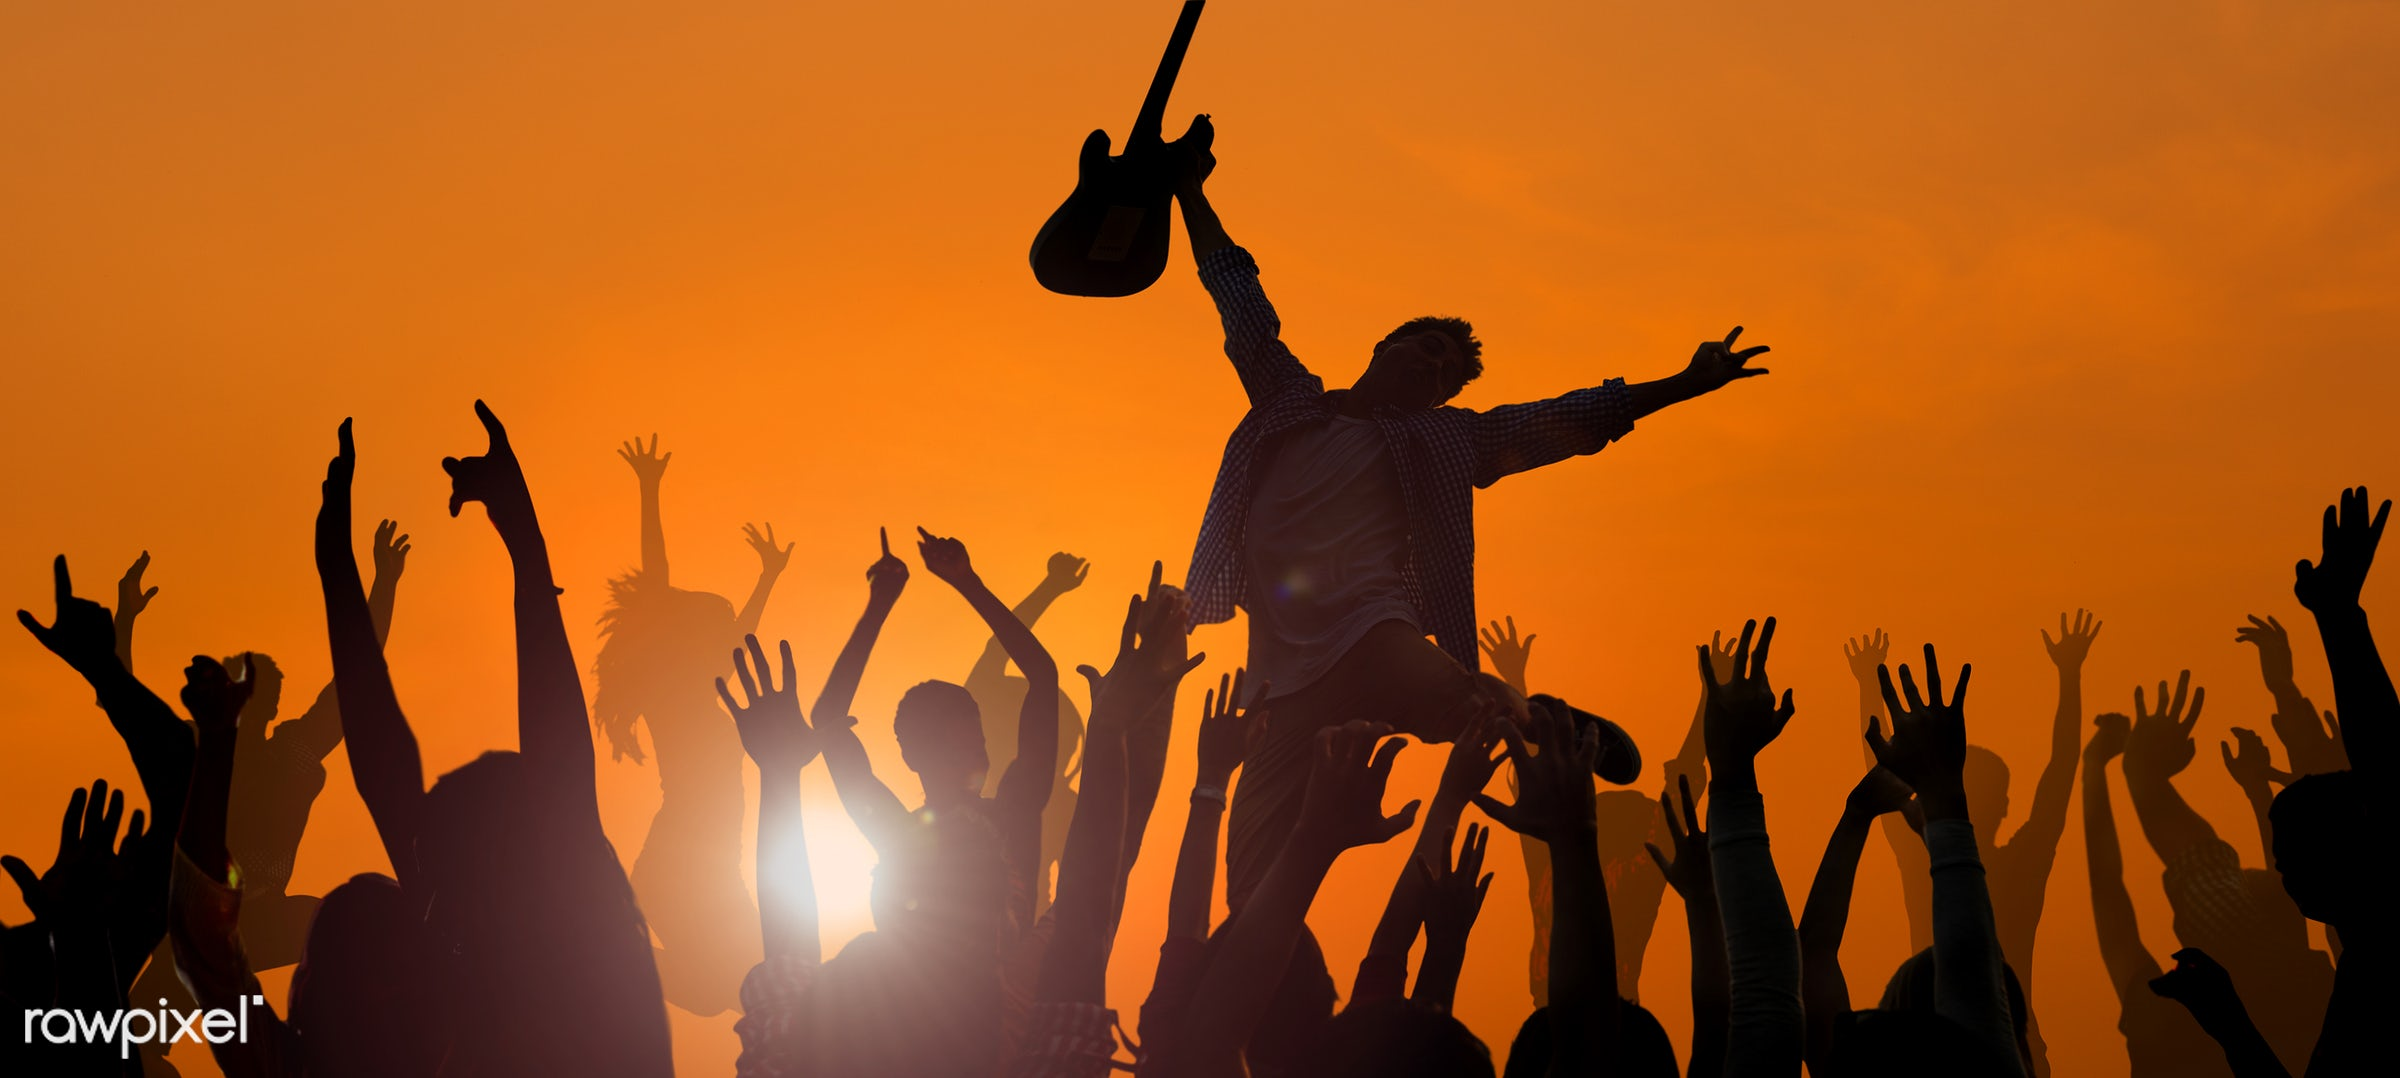 adolescence, audience, back lit, beach, beach party, carefree, celebration, cheerful, concert, dancing, ecstatic, enjoyment...